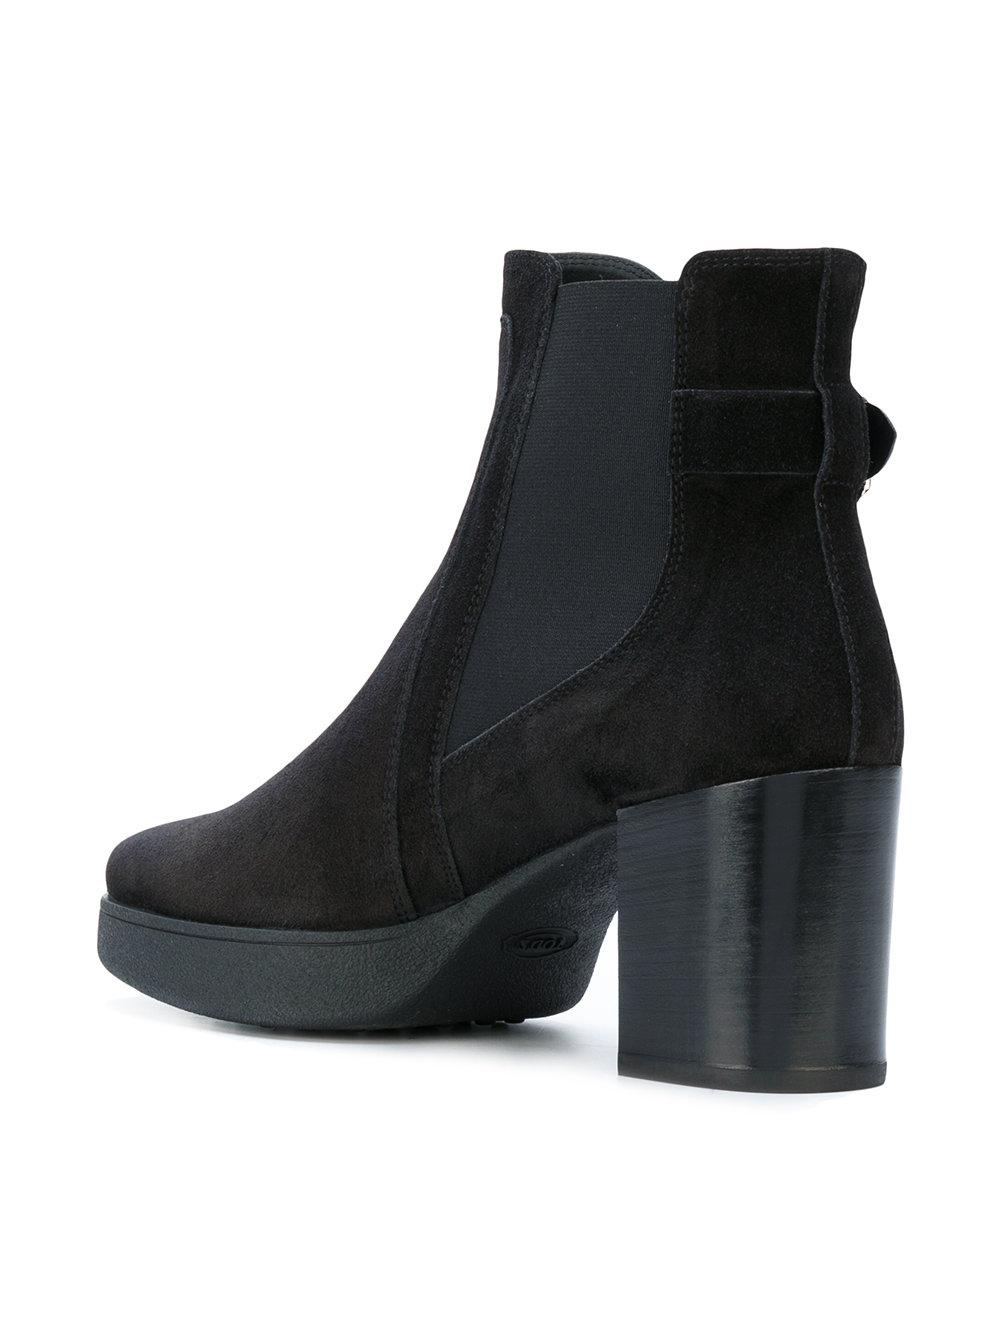 Tod's Leather Platform Boots in Black